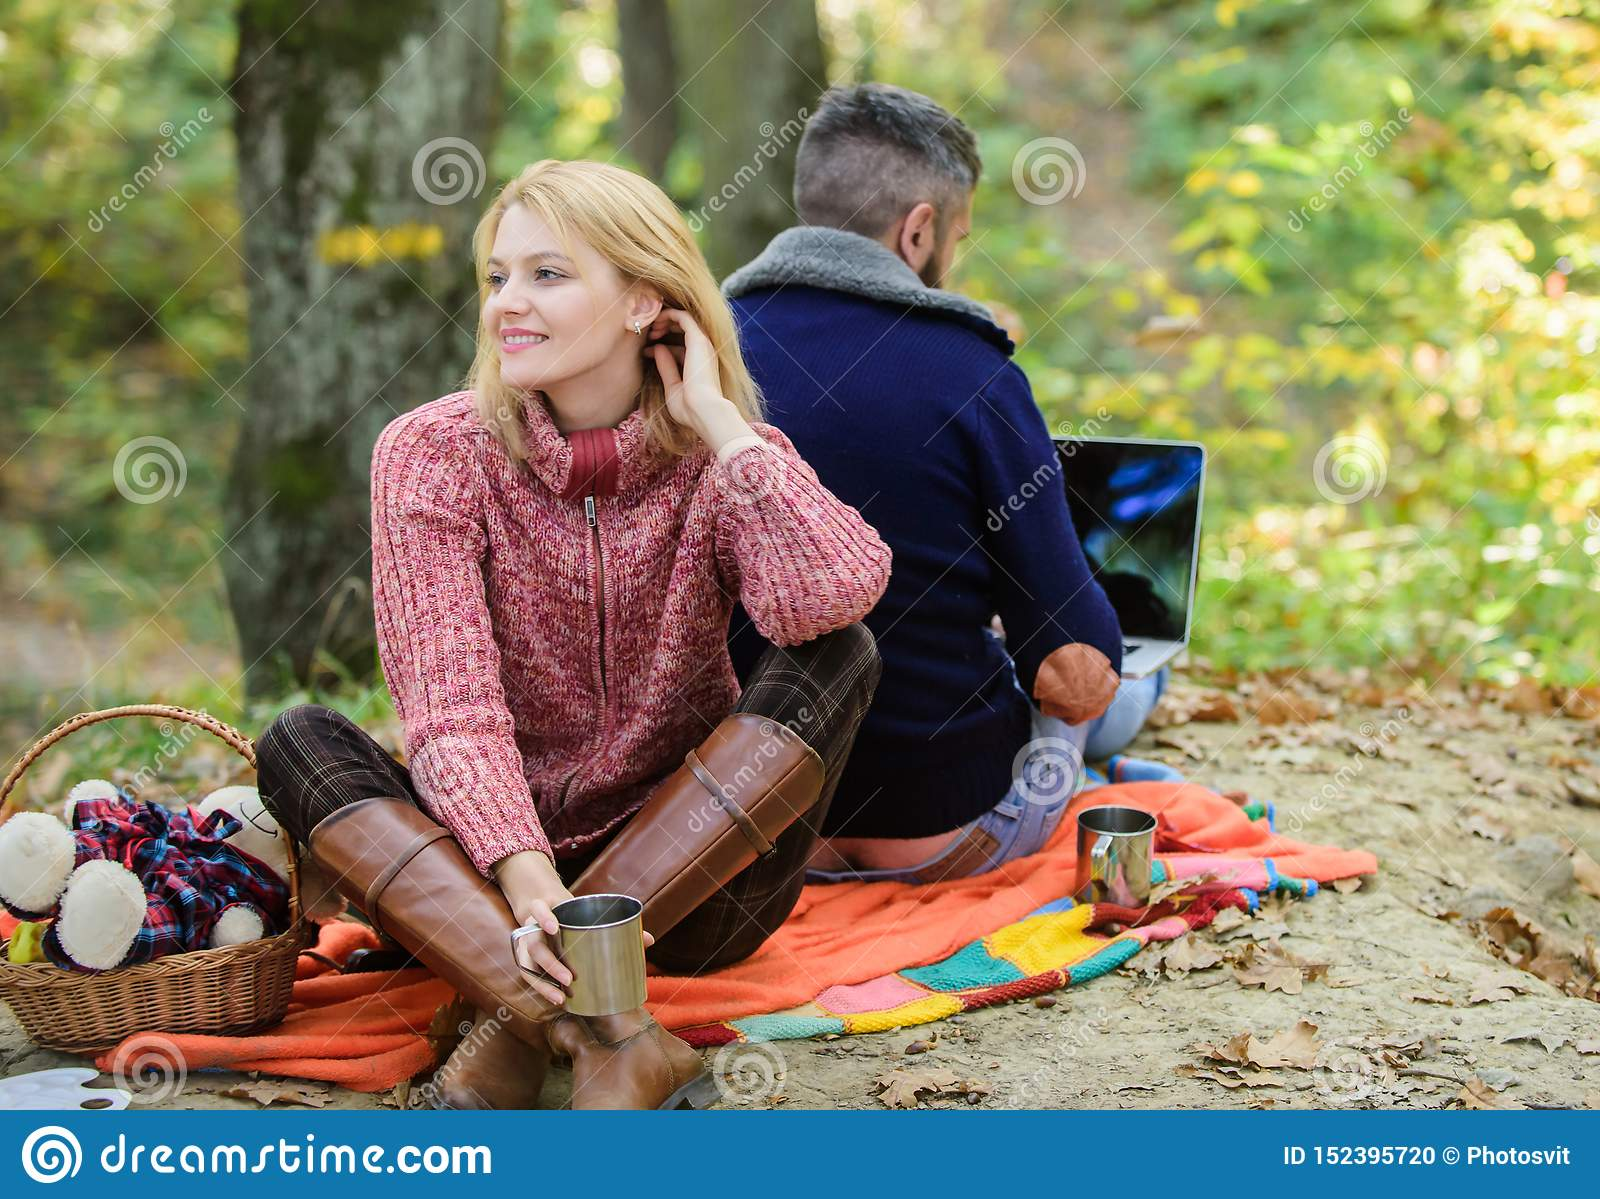 Internet addicted husband. Working on fresh air. Surfing internet. Happy loving couple relaxing in park with laptop